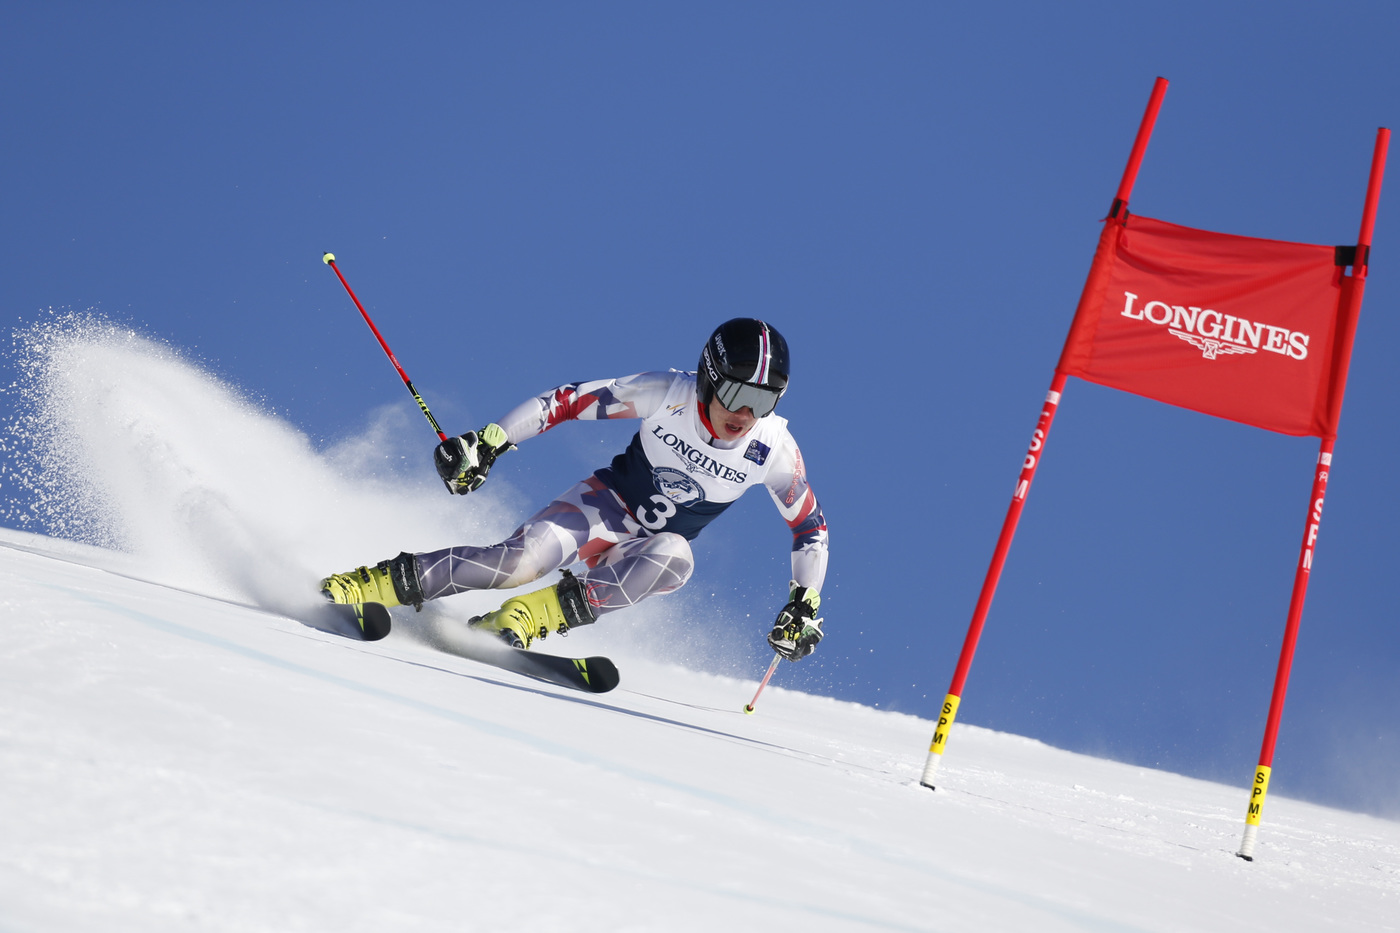 Longines Alpine Skiing Event: Longines Future Ski Champions : The best international young skiers faced off during the FIS Alpine World Cup Finals   15